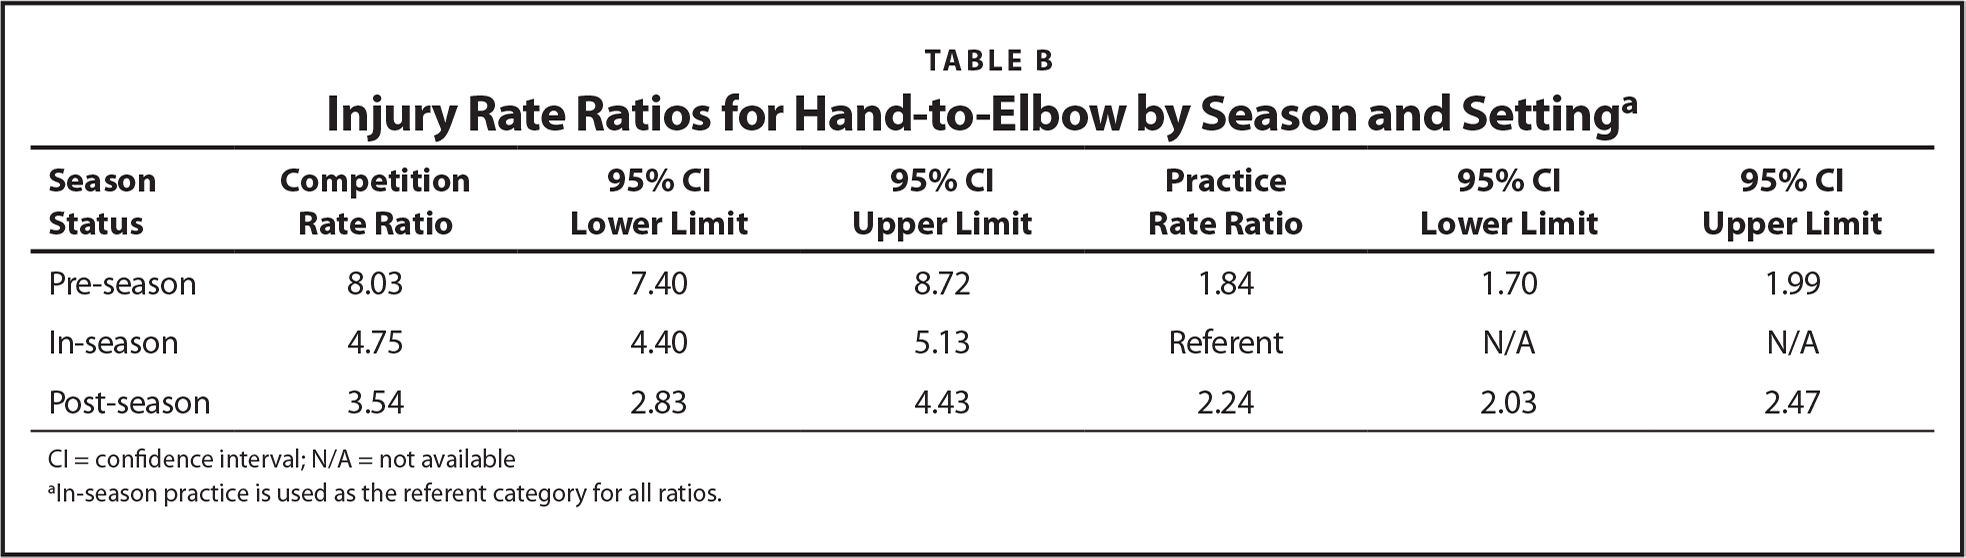 Injury Rate Ratios for Hand-to-Elbow by Season and Settinga